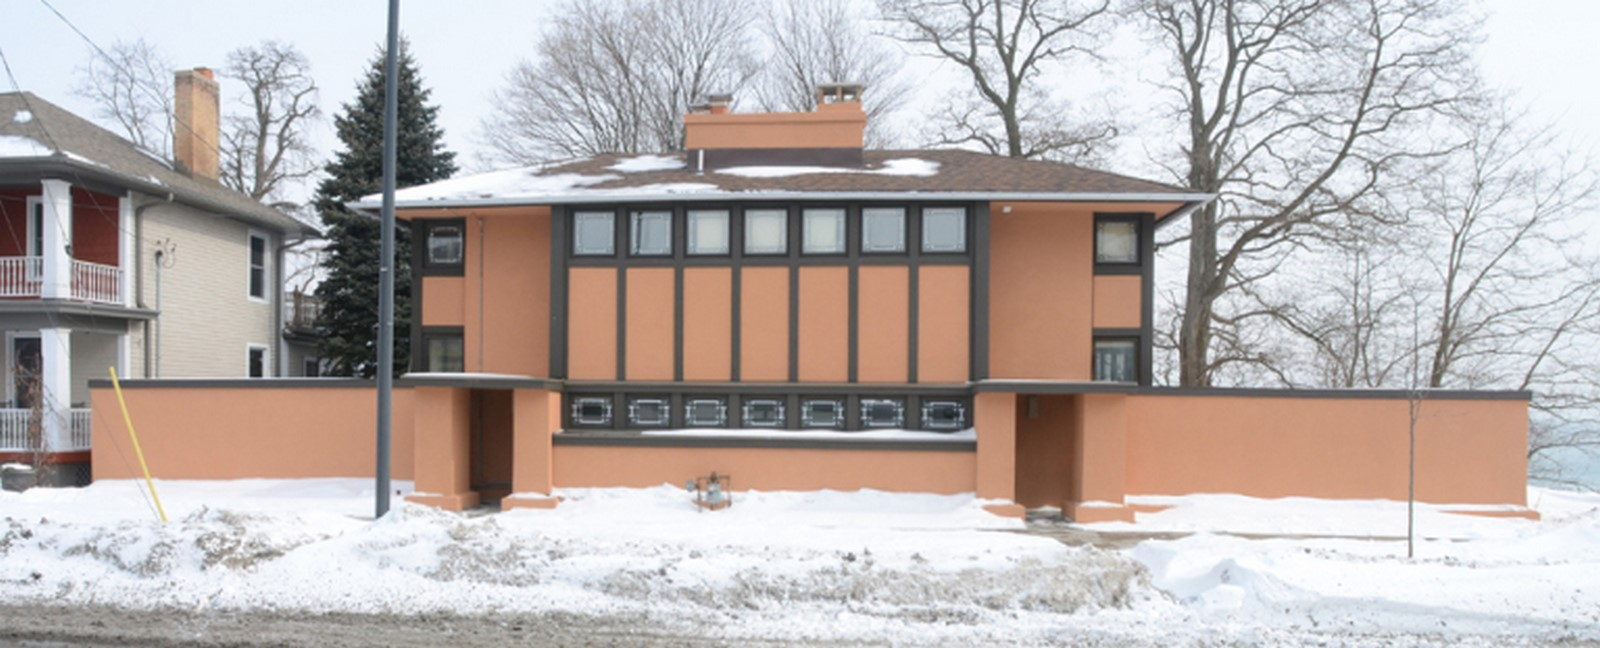 Thomas P Hardy House in Wisconsin, Racine by Ar. Frank Llyod Wright Sheet3